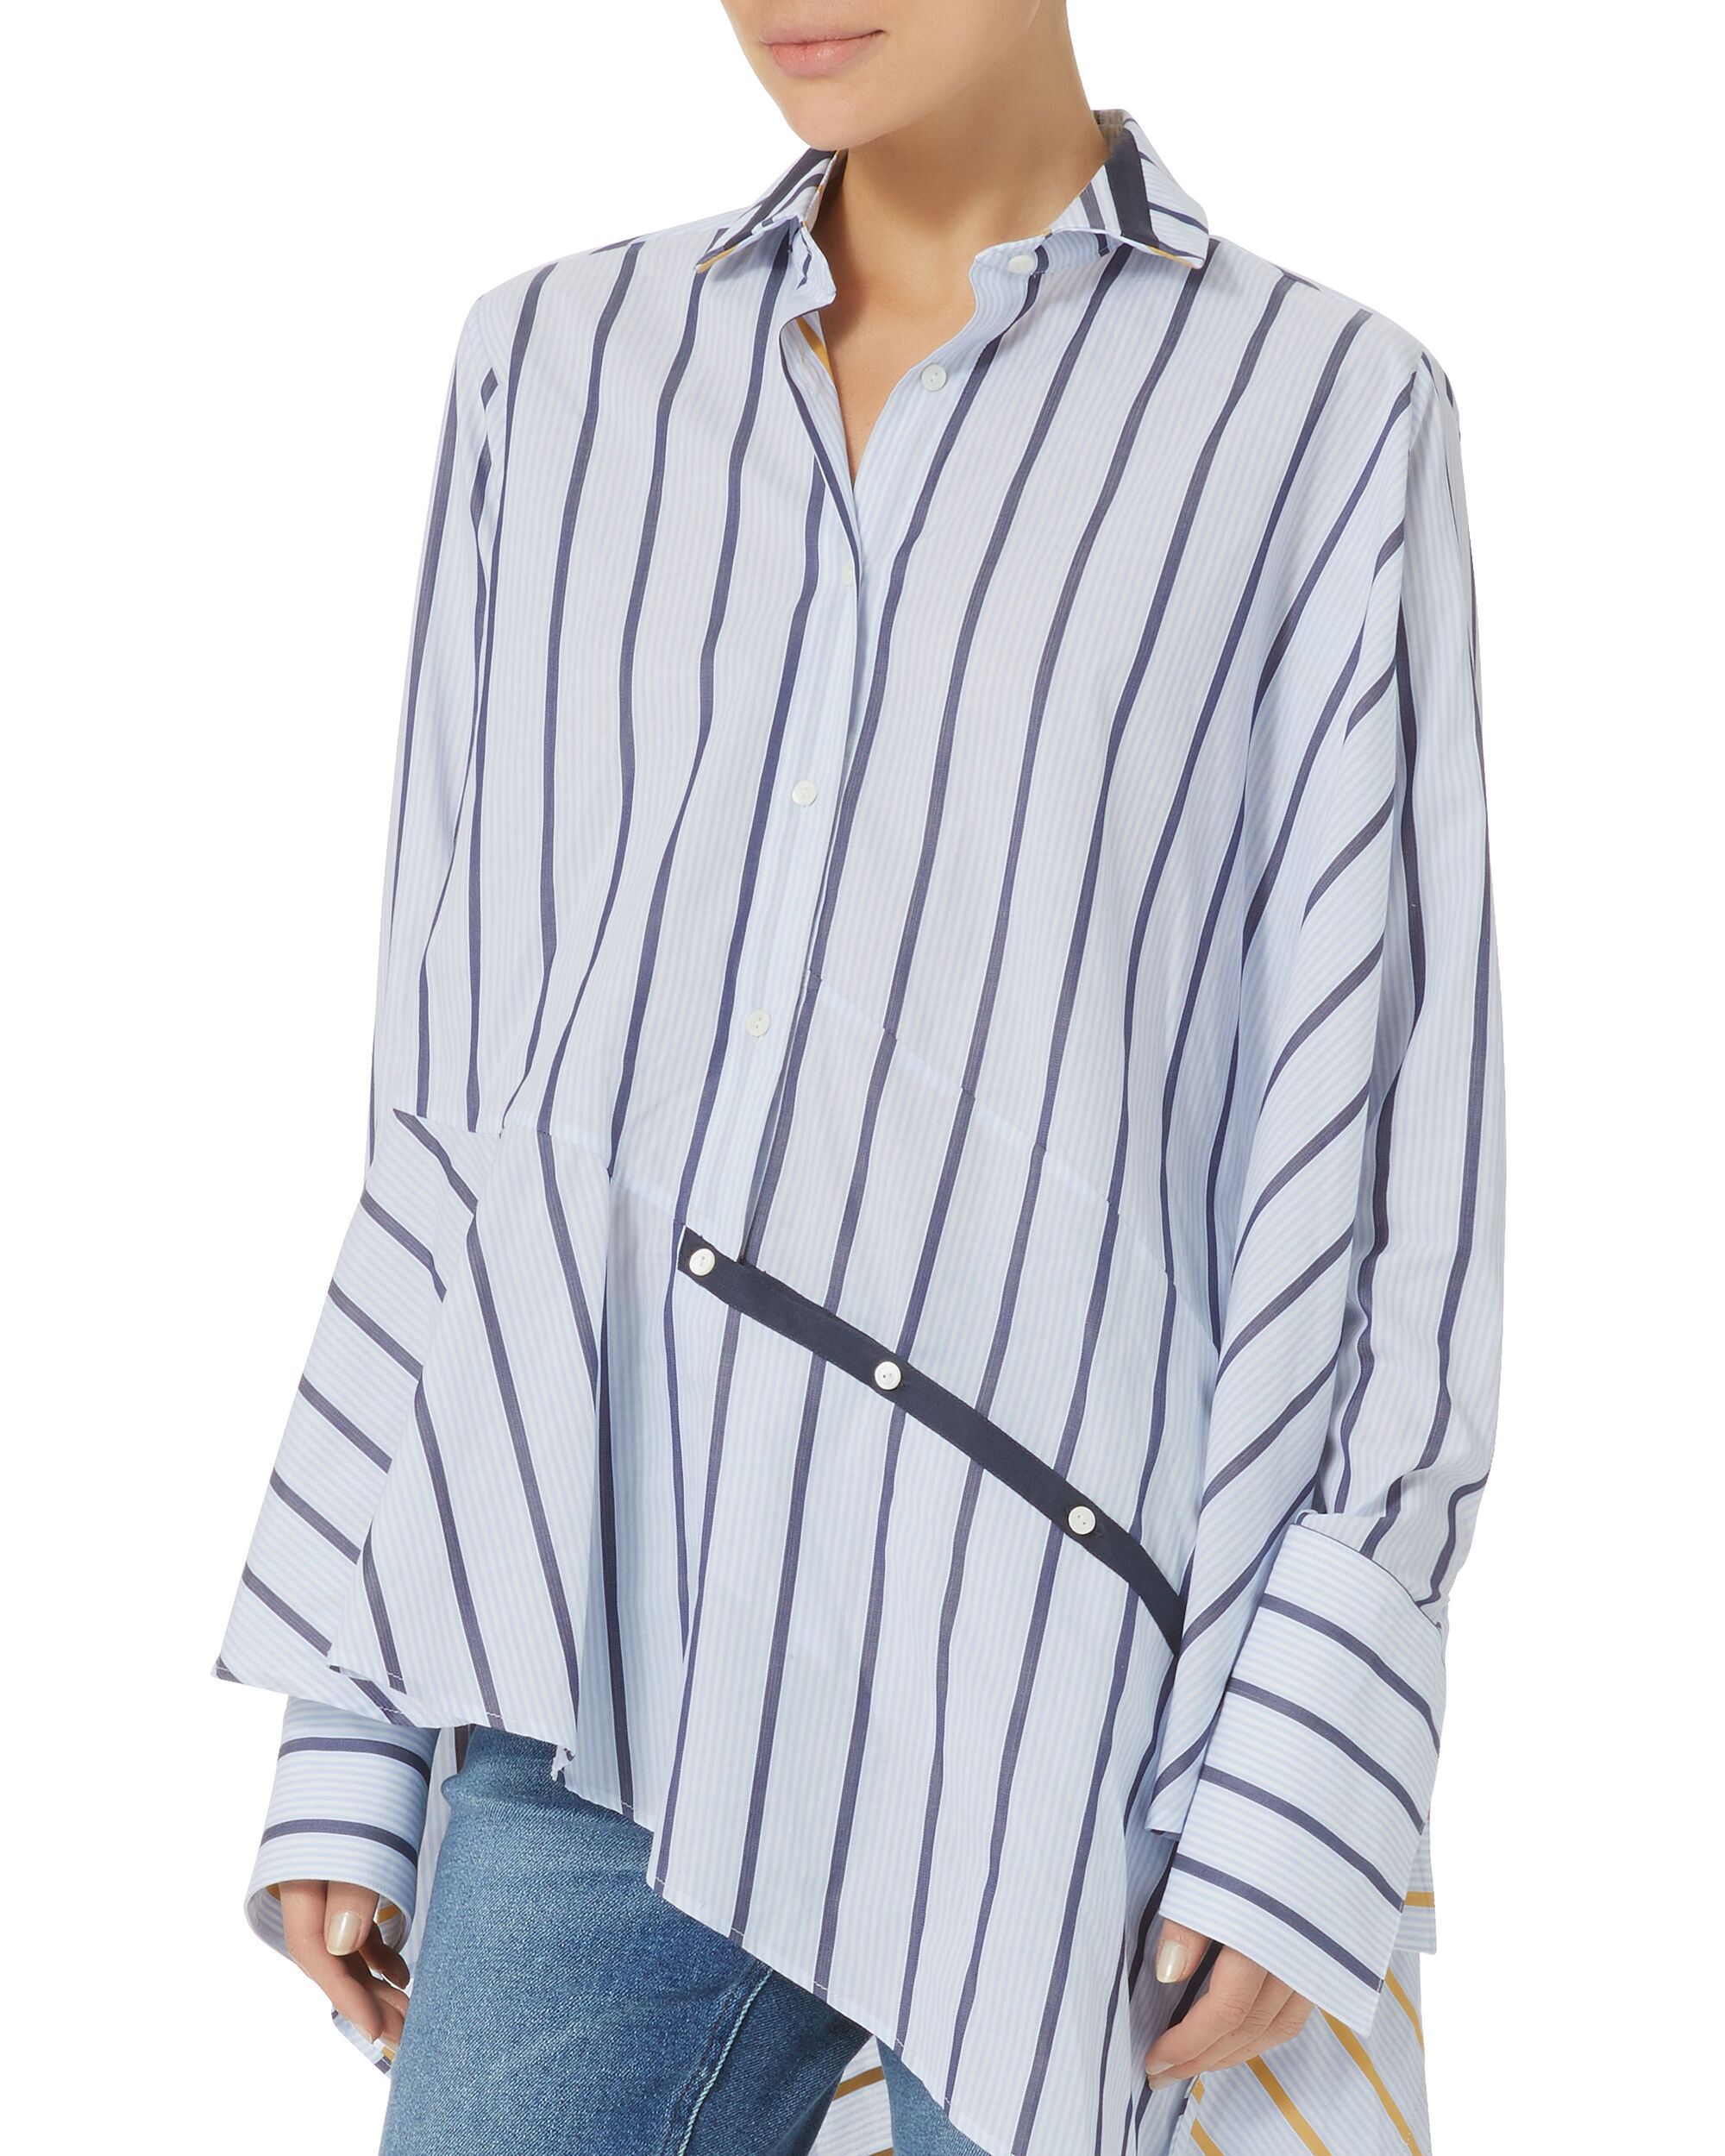 Striped Spicy Shirt, PATTERN, hi-res